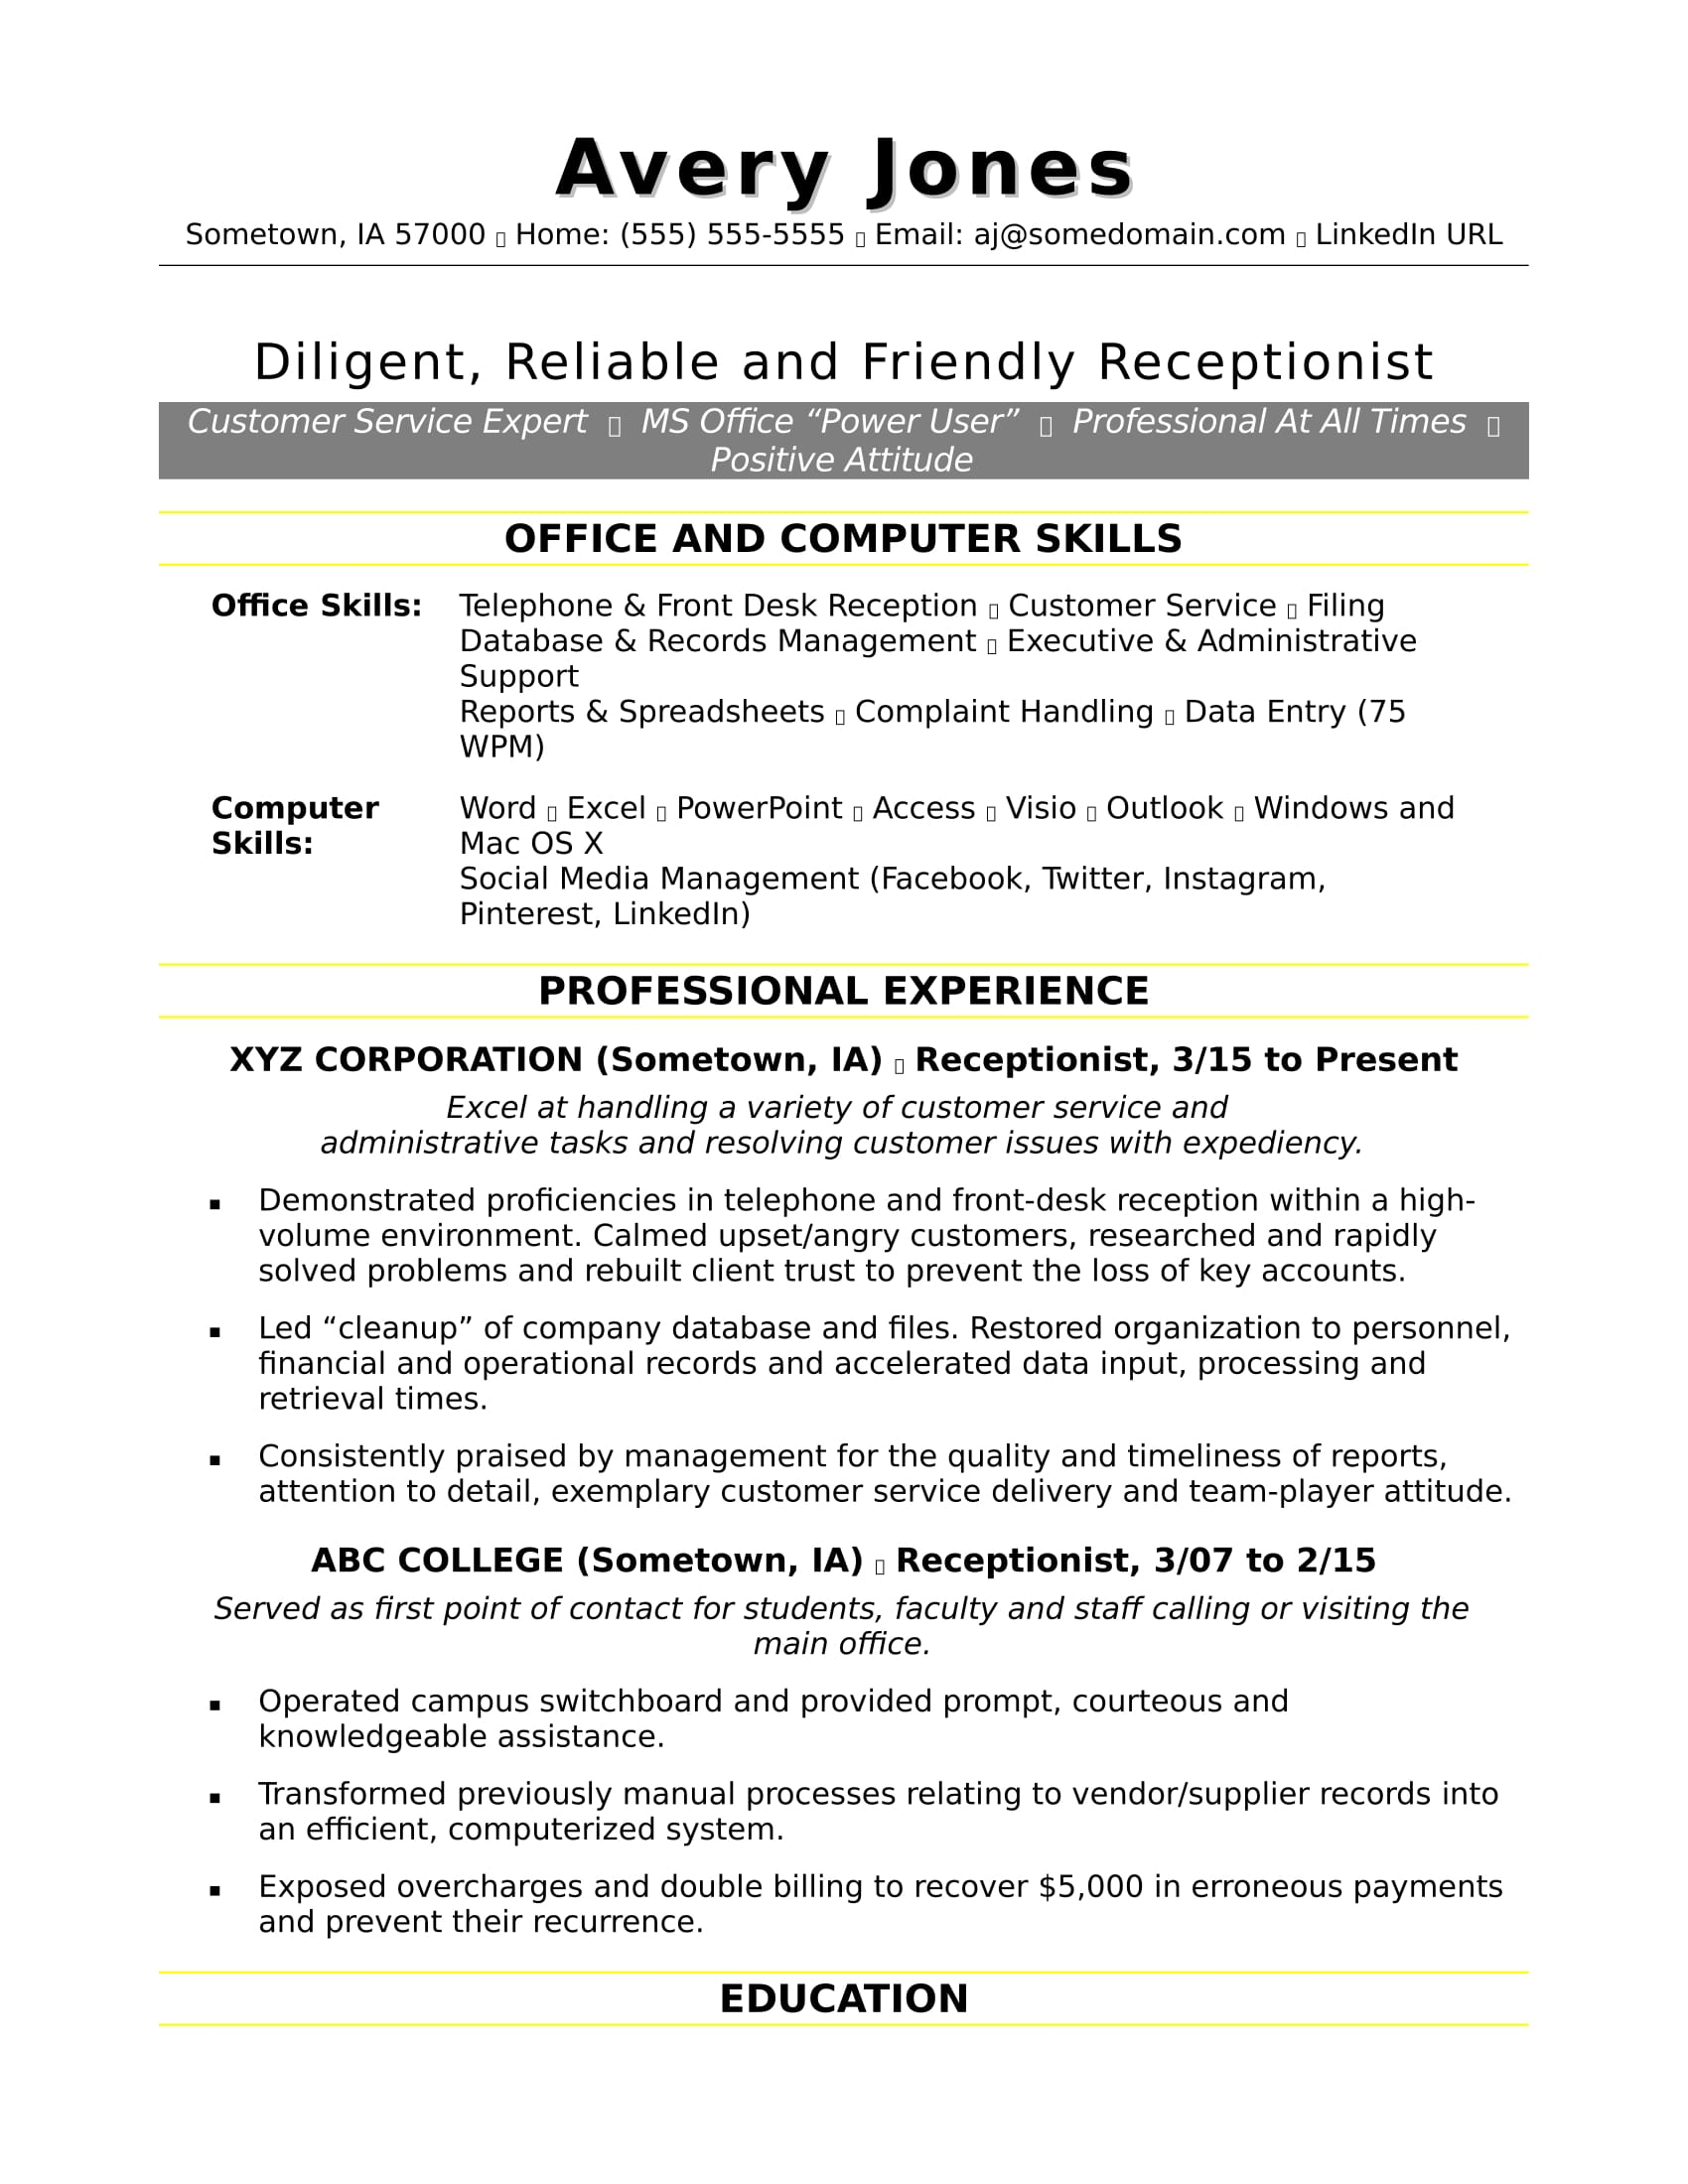 sample resume for a receptionist - Sample Resume For Receptionist In Law Firm